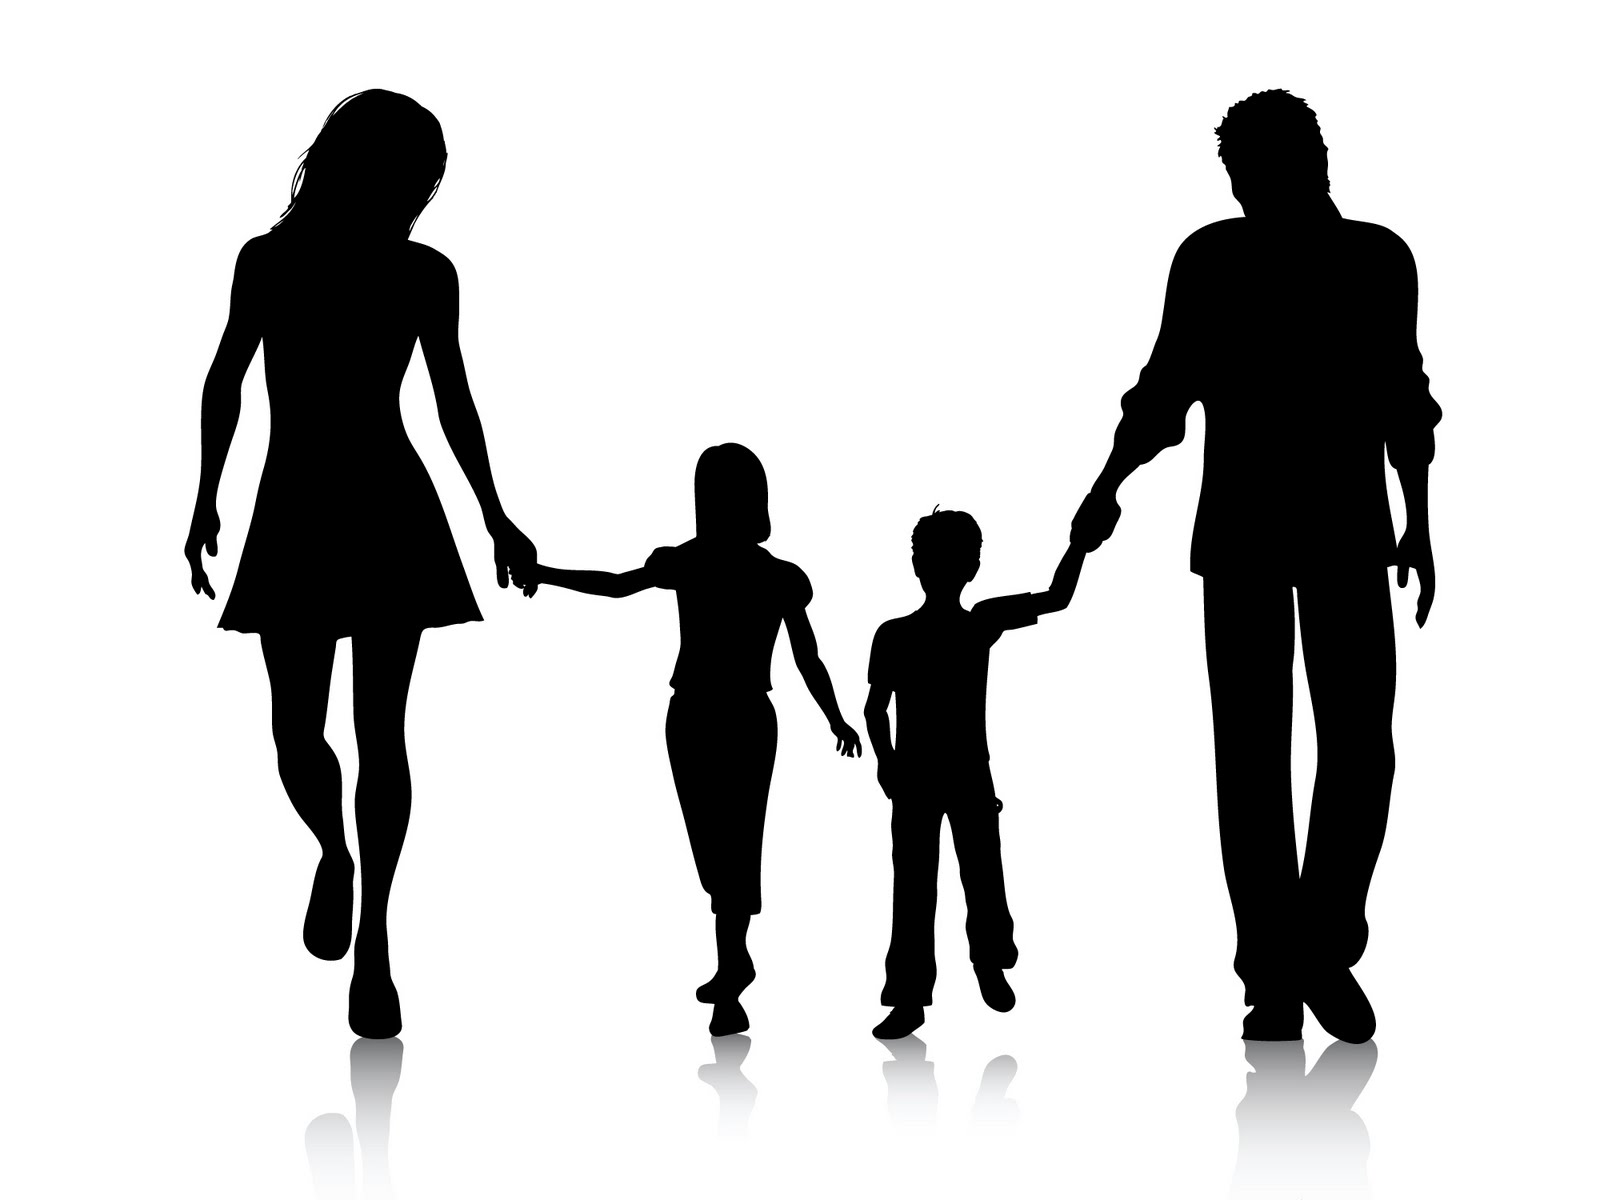 the essay blog persuassive essay both parents should assume equal responsibility in raising a child